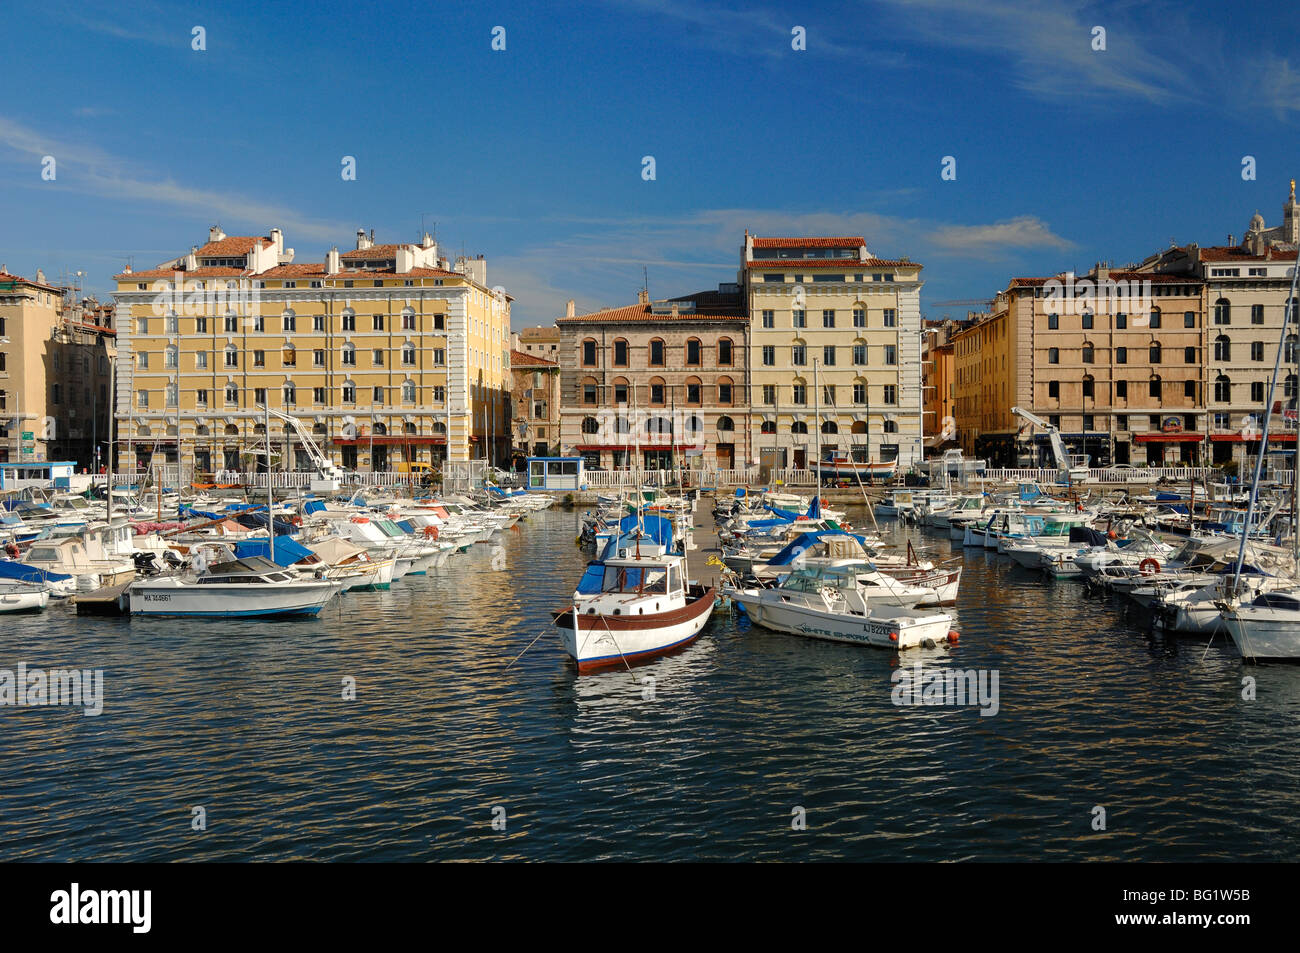 Quay de Rive Neuve Quay, Old Port or 'Vieux Port' with Yachts in Marina, Harbour or Harbor, Marseille or - Stock Image